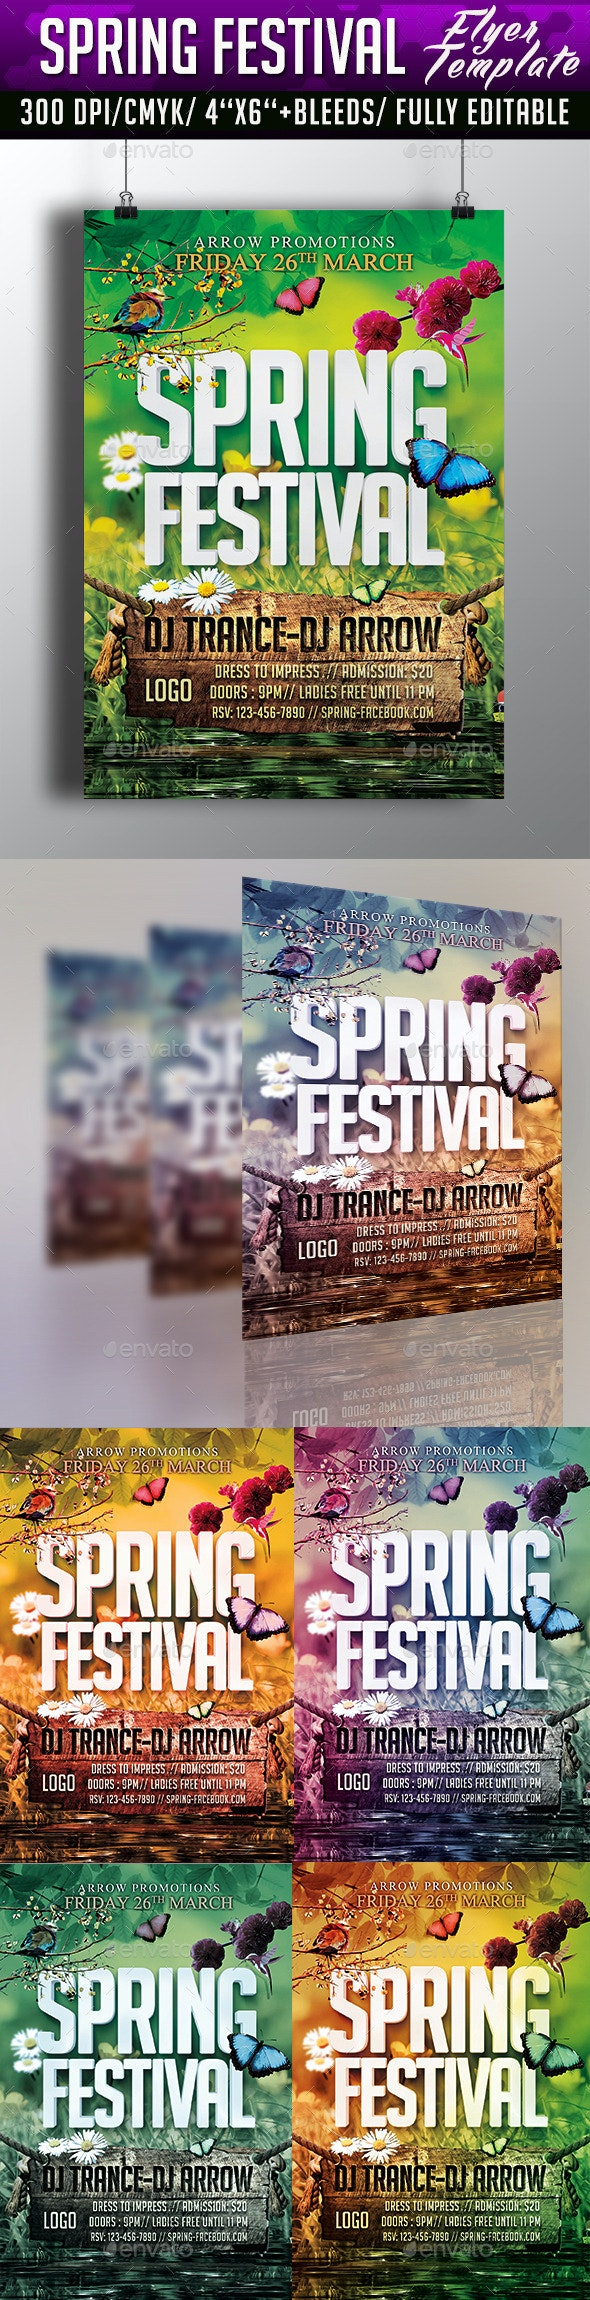 Spring Festival Flyer Template - Clubs & Parties Events